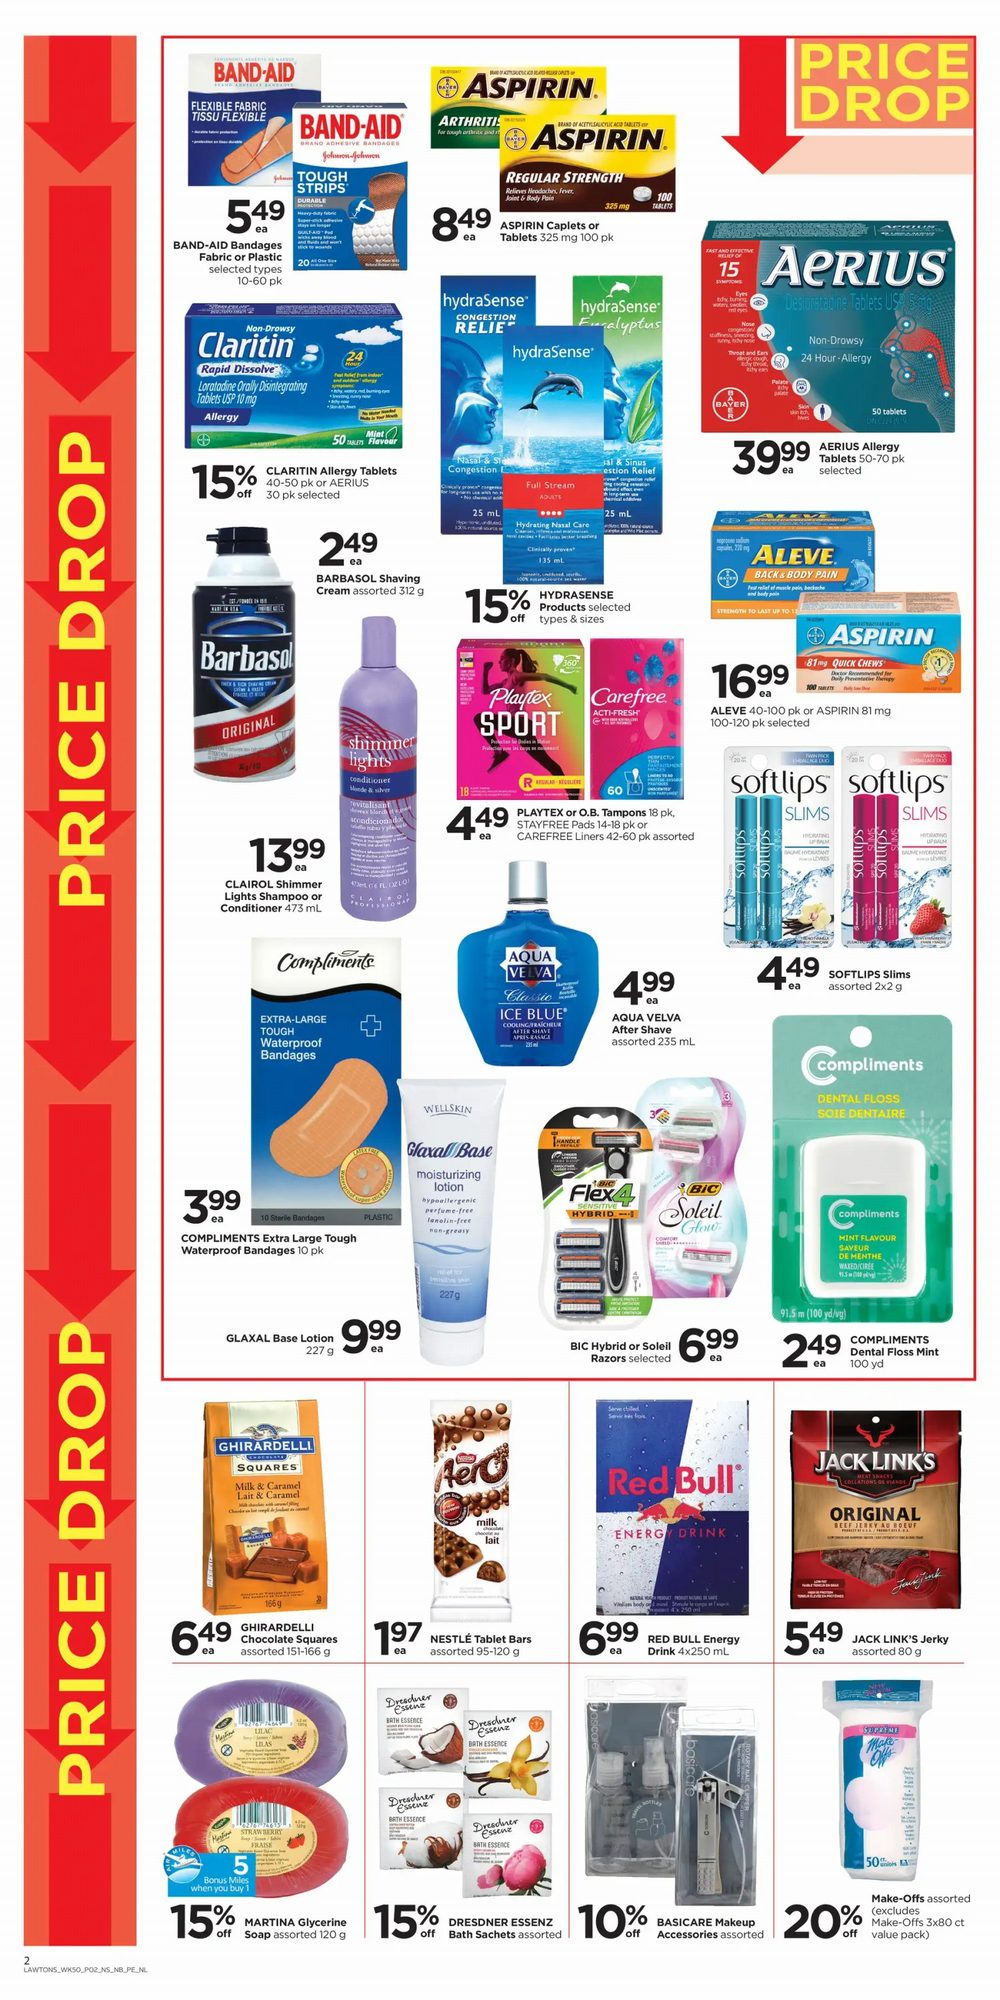 Lawtons Drugs - Weekly Flyer Specials - Page 2